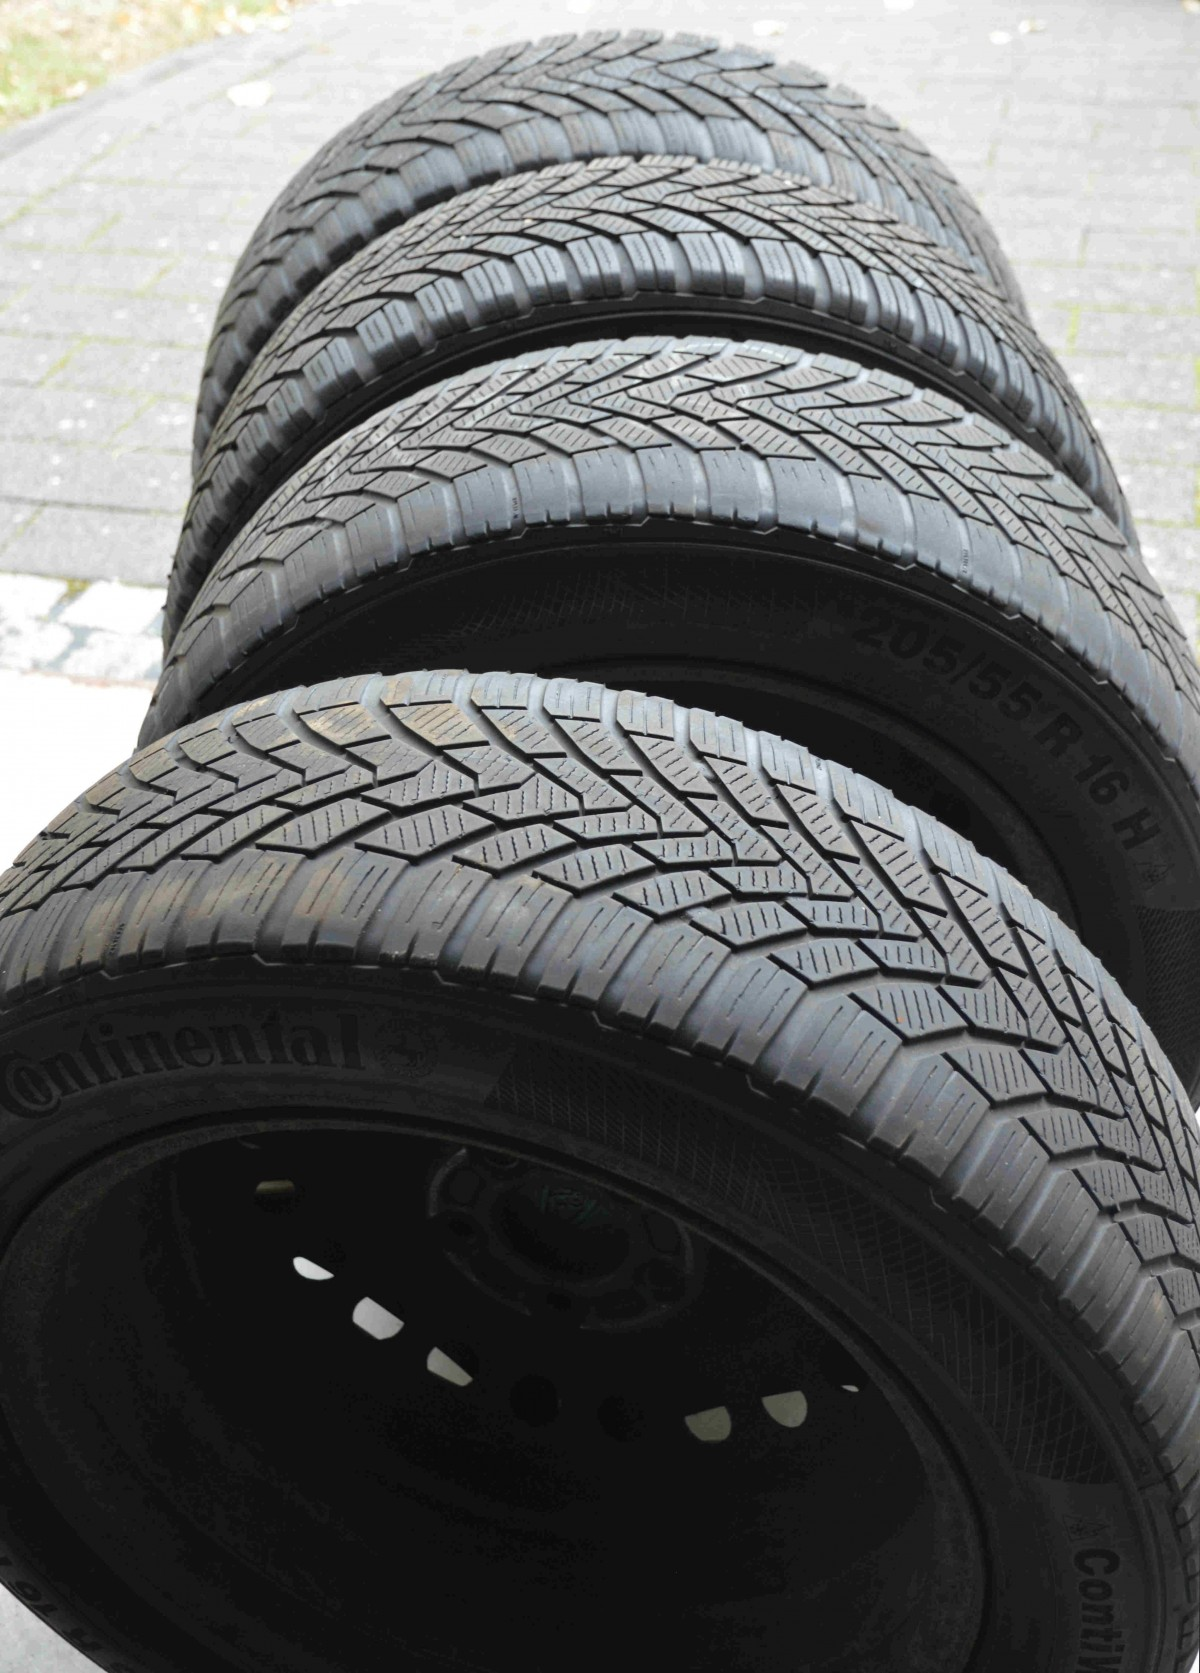 Picking the right tyres: Get the right rubber for peaceful travels